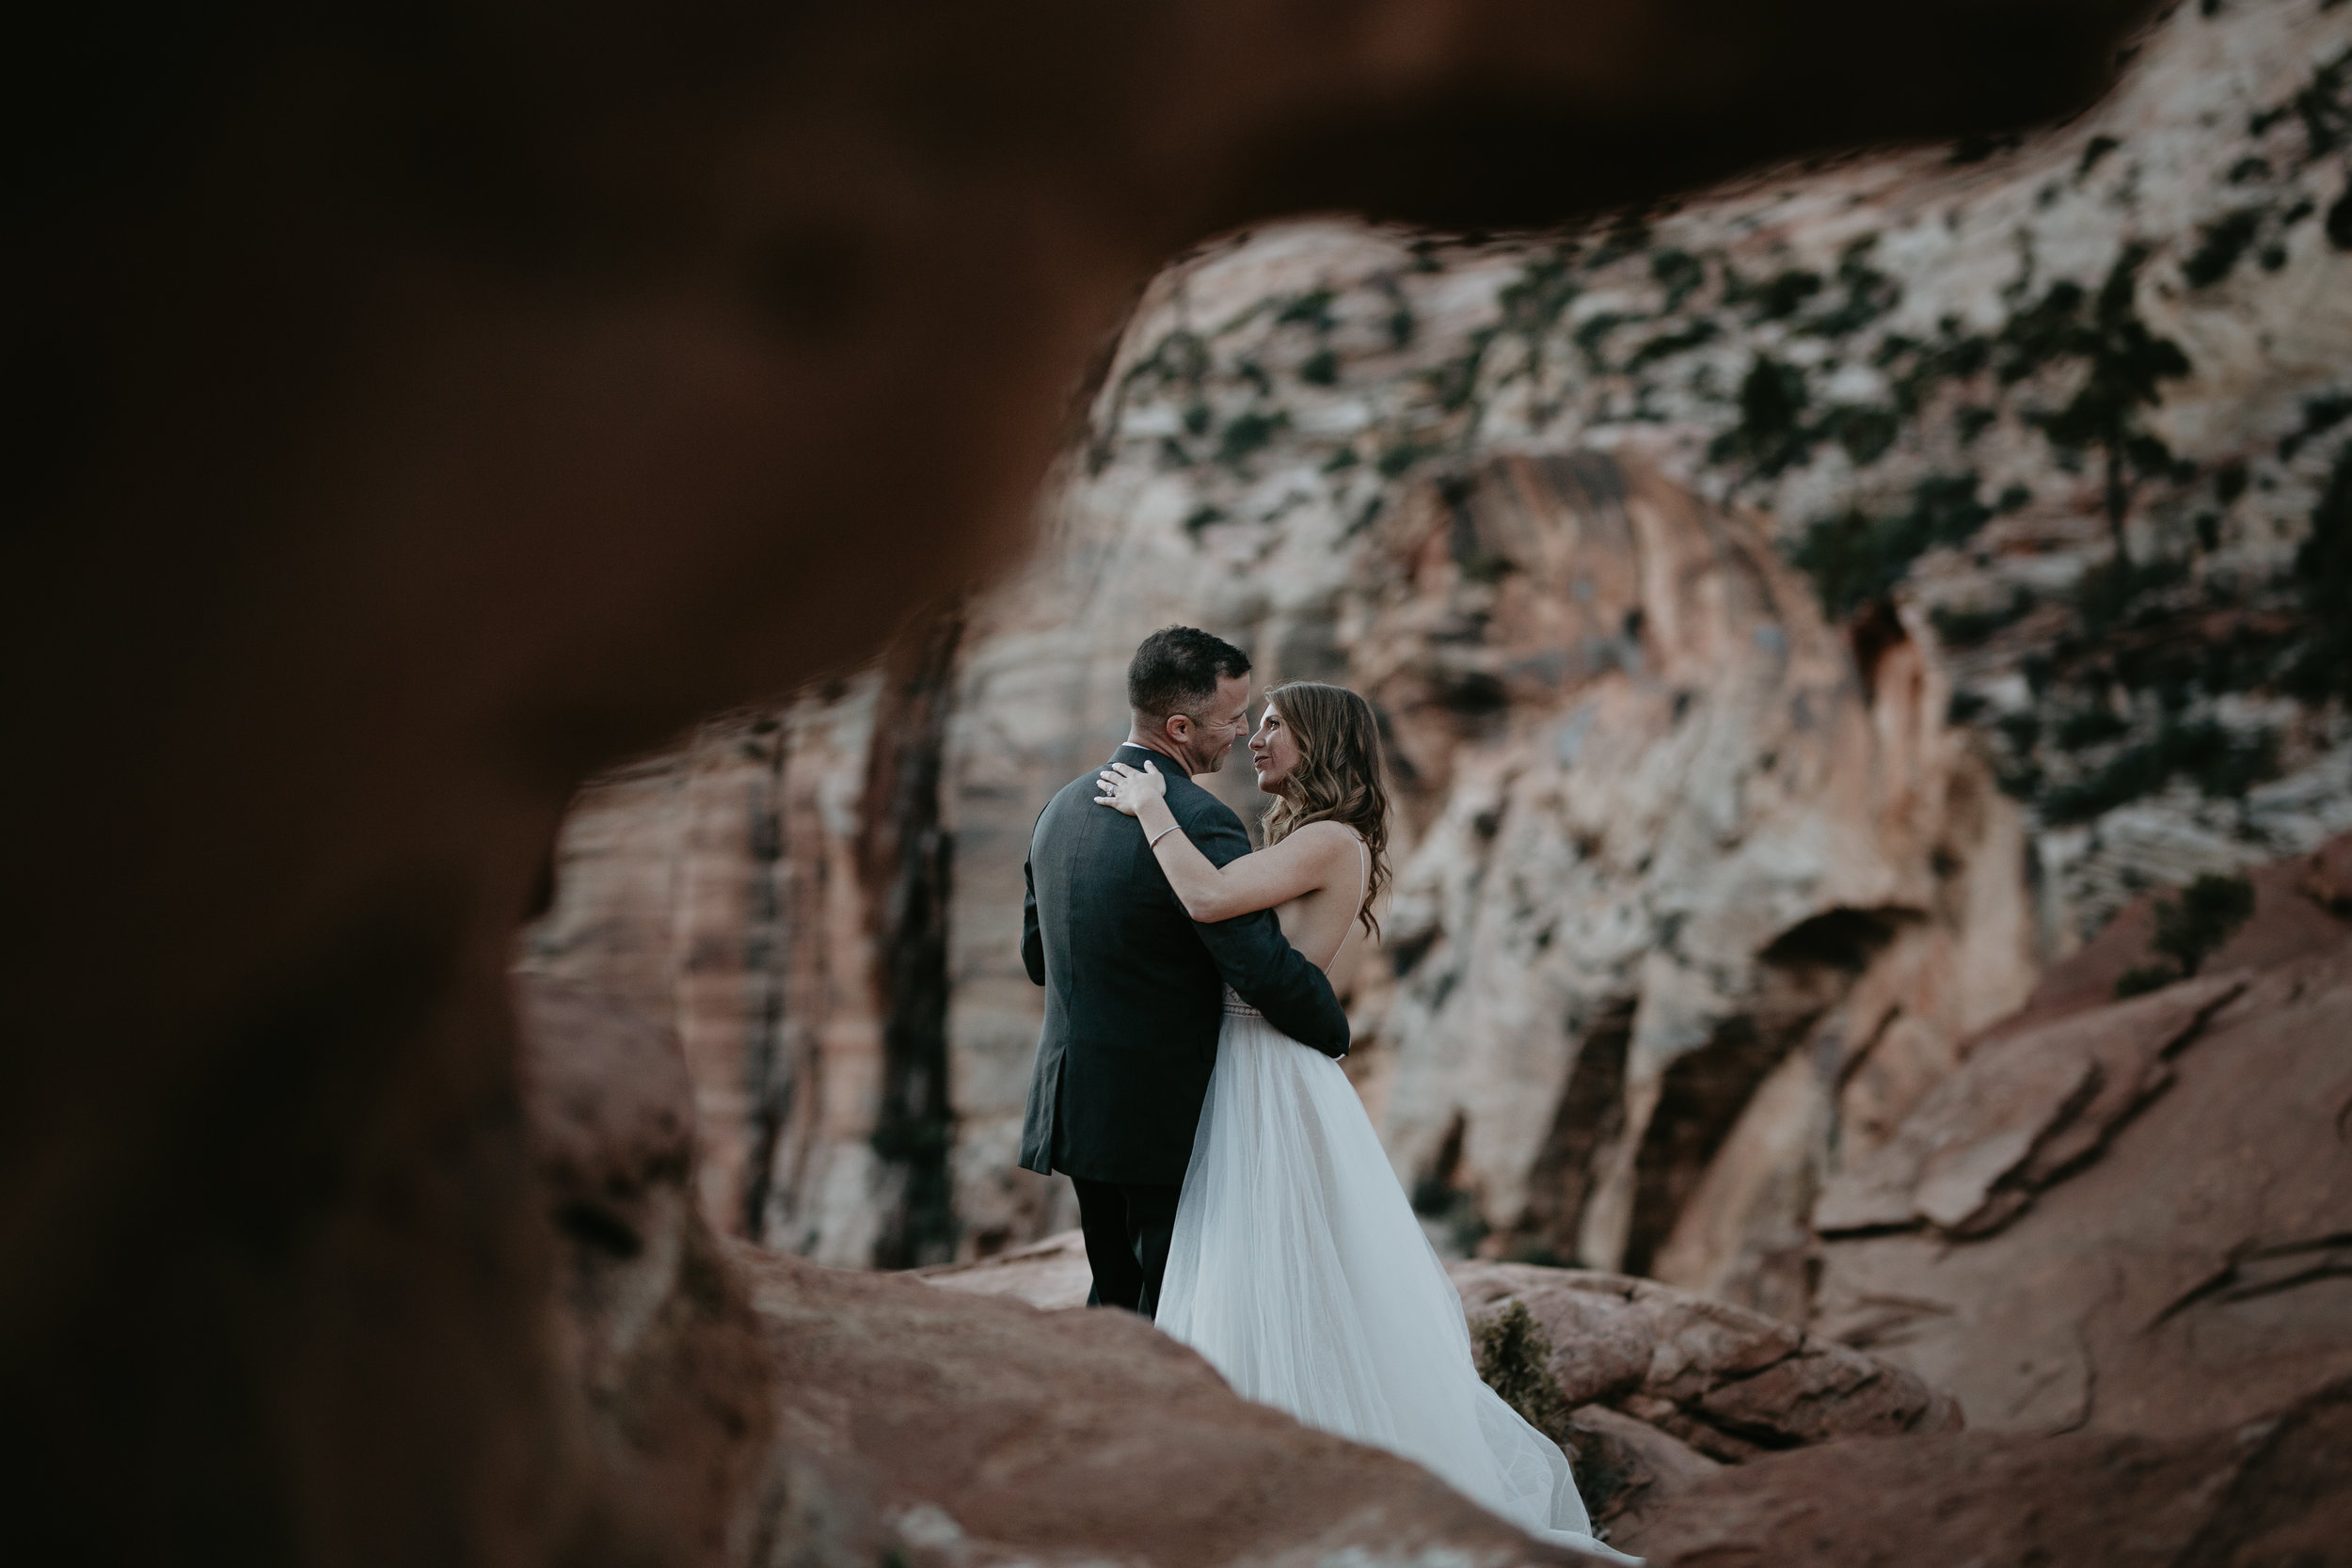 nicole-daacke-photography-zion-national-park-elopement-photographer-canyon-overlook-trail-elope-hiking-adventure-wedding-photos-fall-utah-red-rock-canyon-stgeorge-eloping-photographer-85.jpg